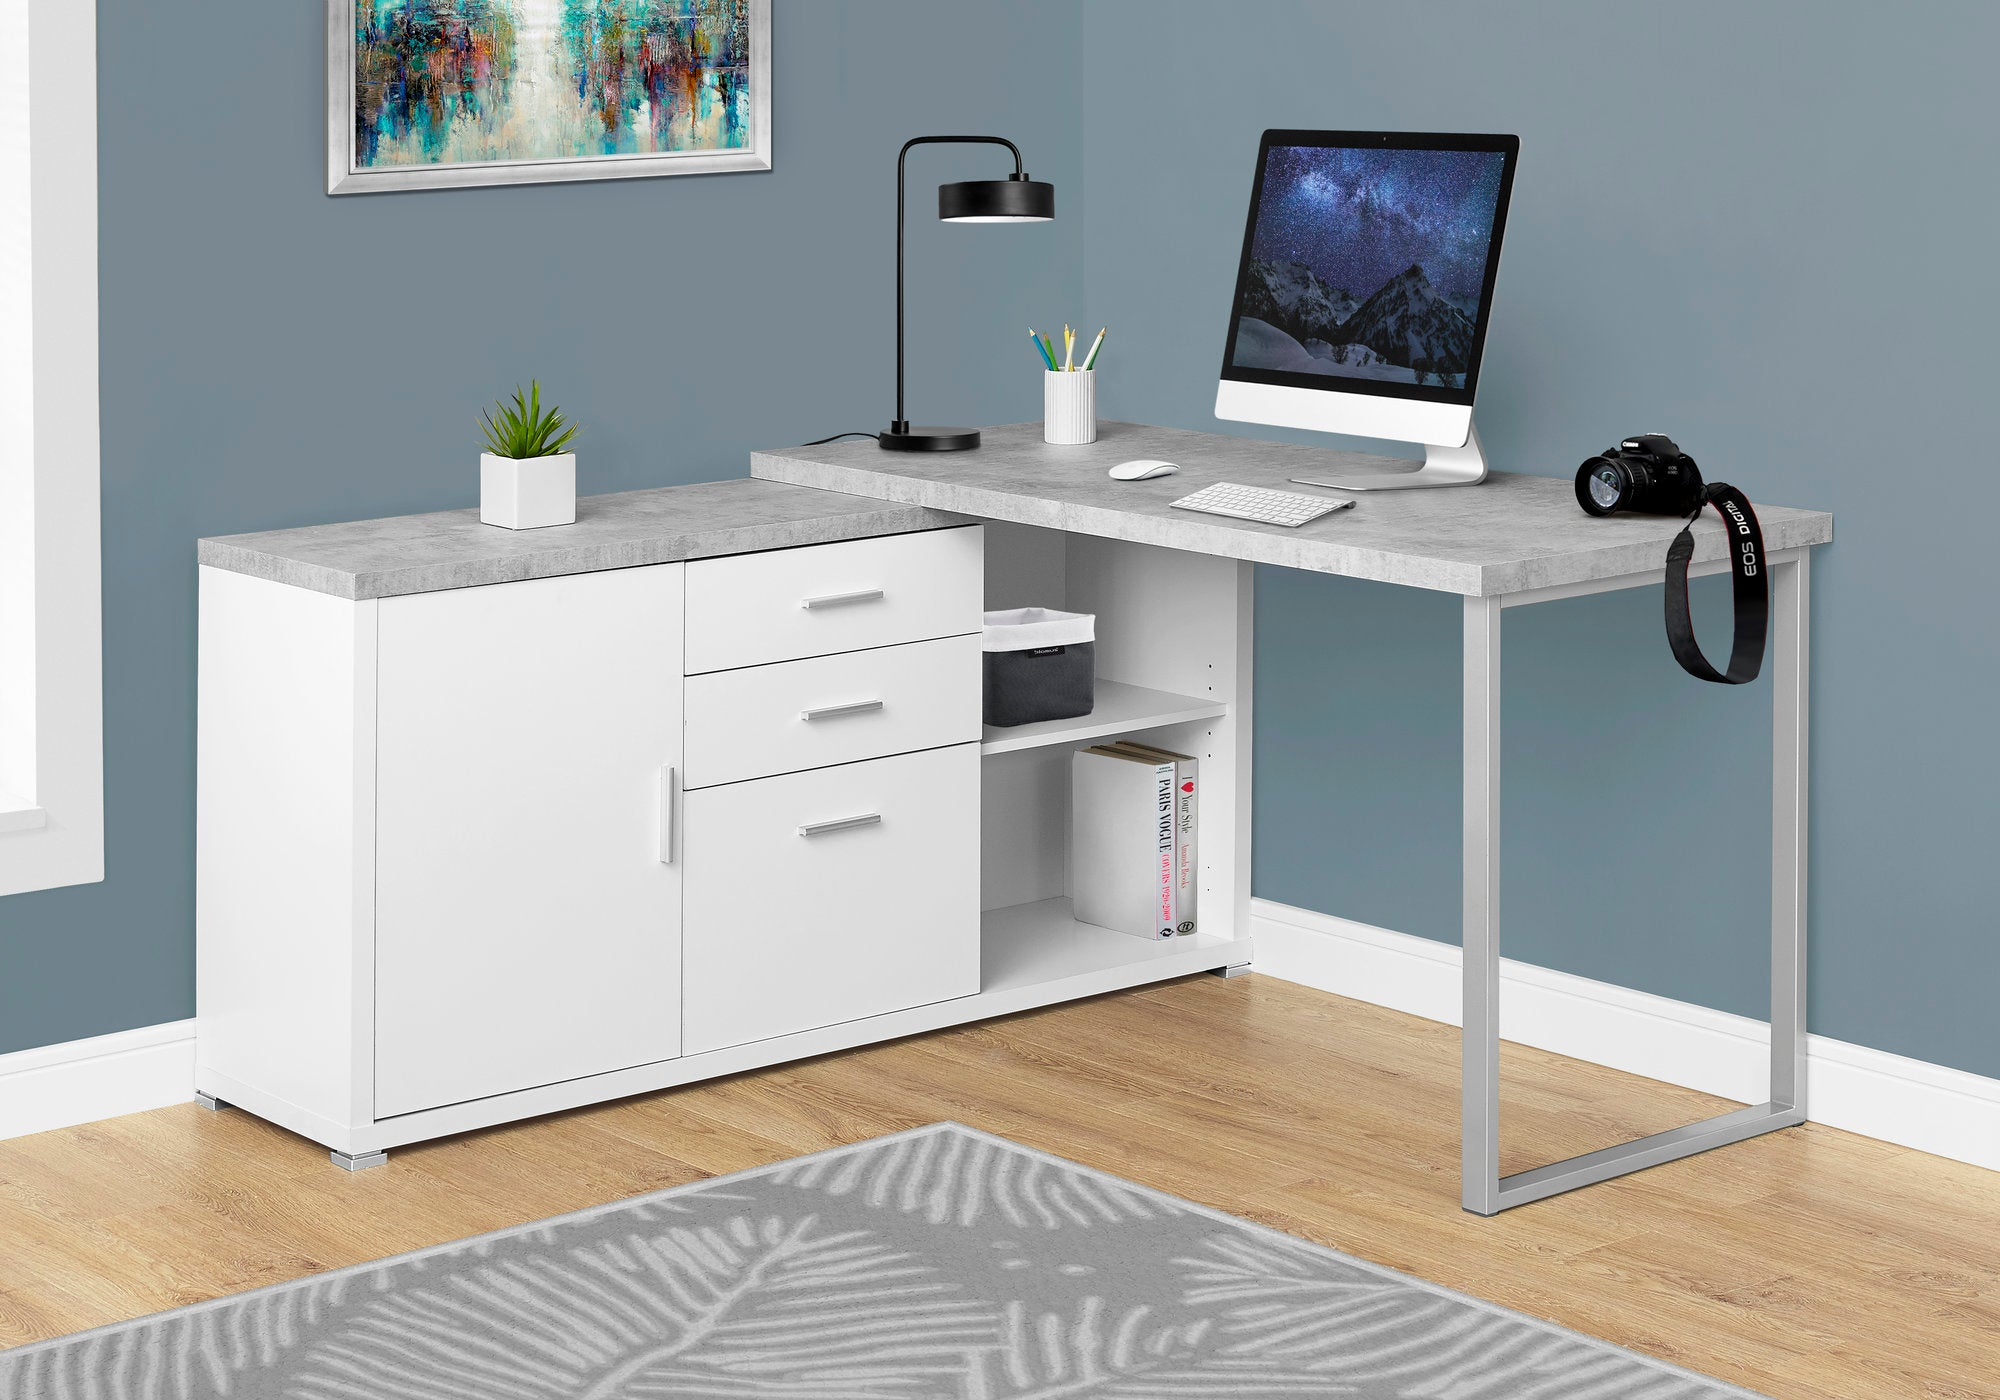 Practical White & Cement Corner Office Desk w/ Shelves & Drawers